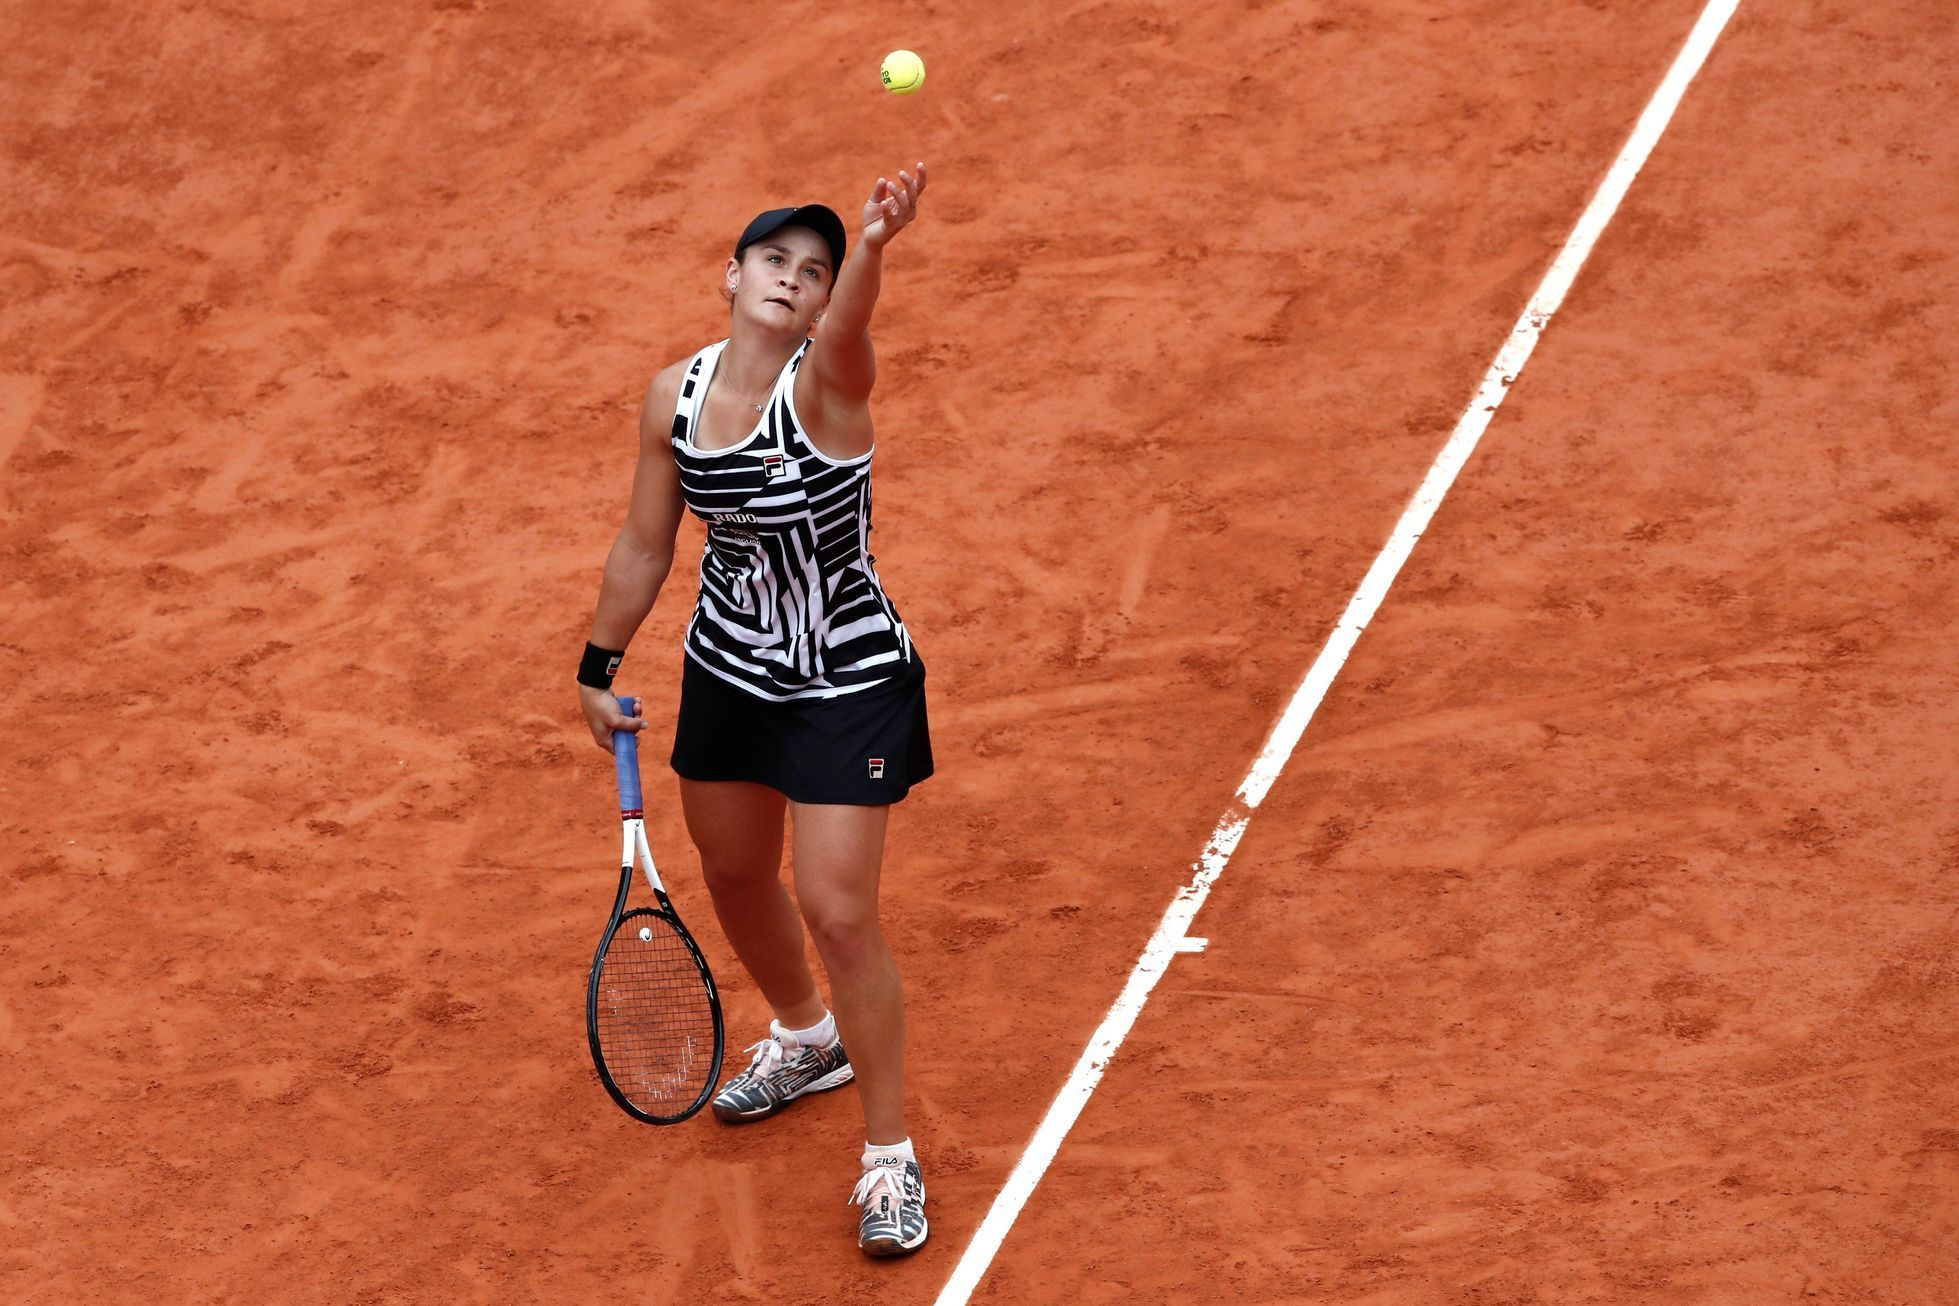 Ashleigh Bartyová ve finále French Open 2019